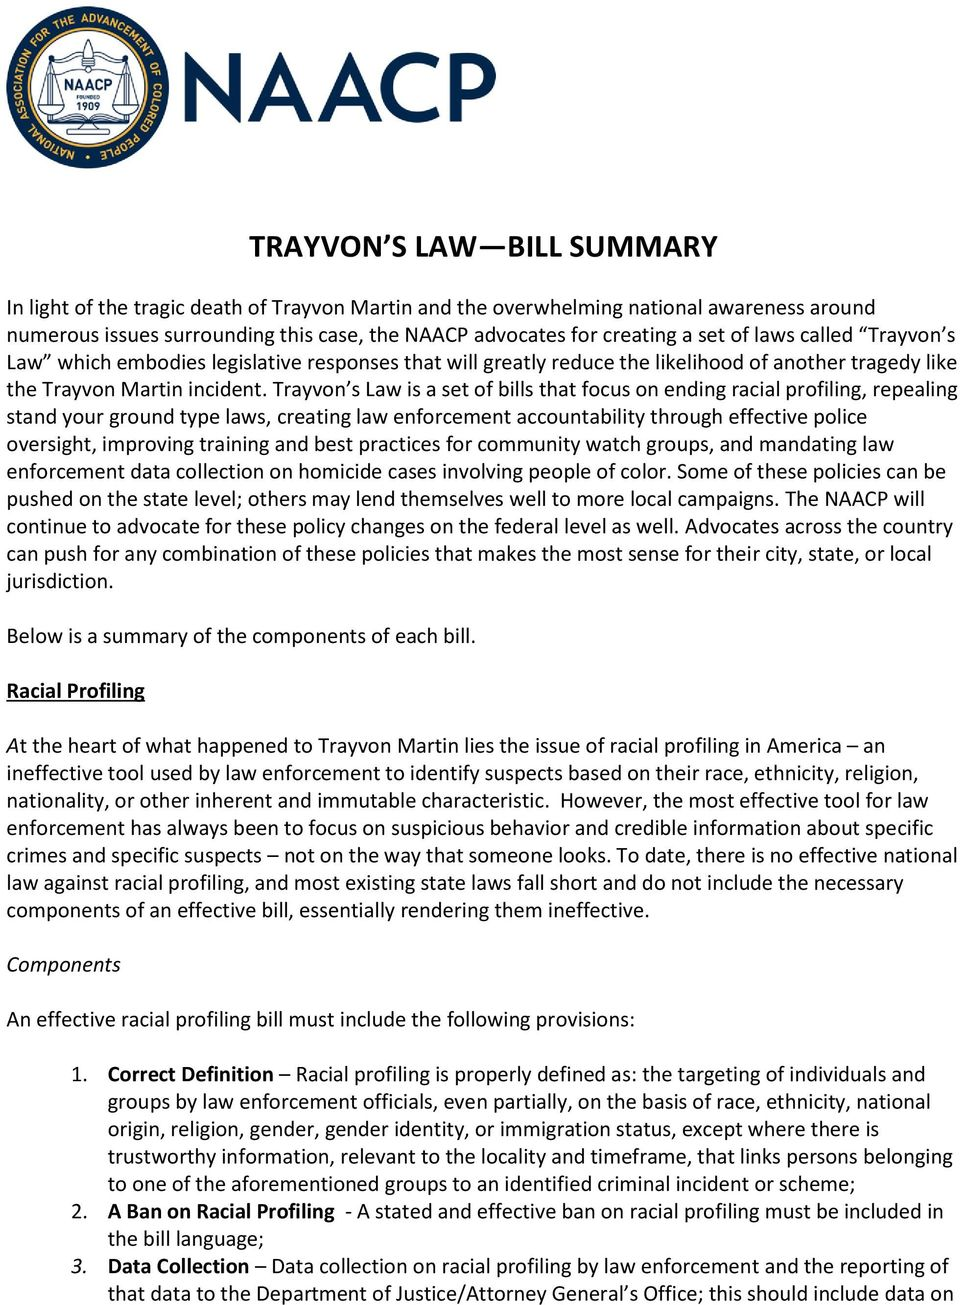 Trayvon s Law is a set of bills that focus on ending racial profiling, repealing stand your ground type laws, creating law enforcement accountability through effective police oversight, improving